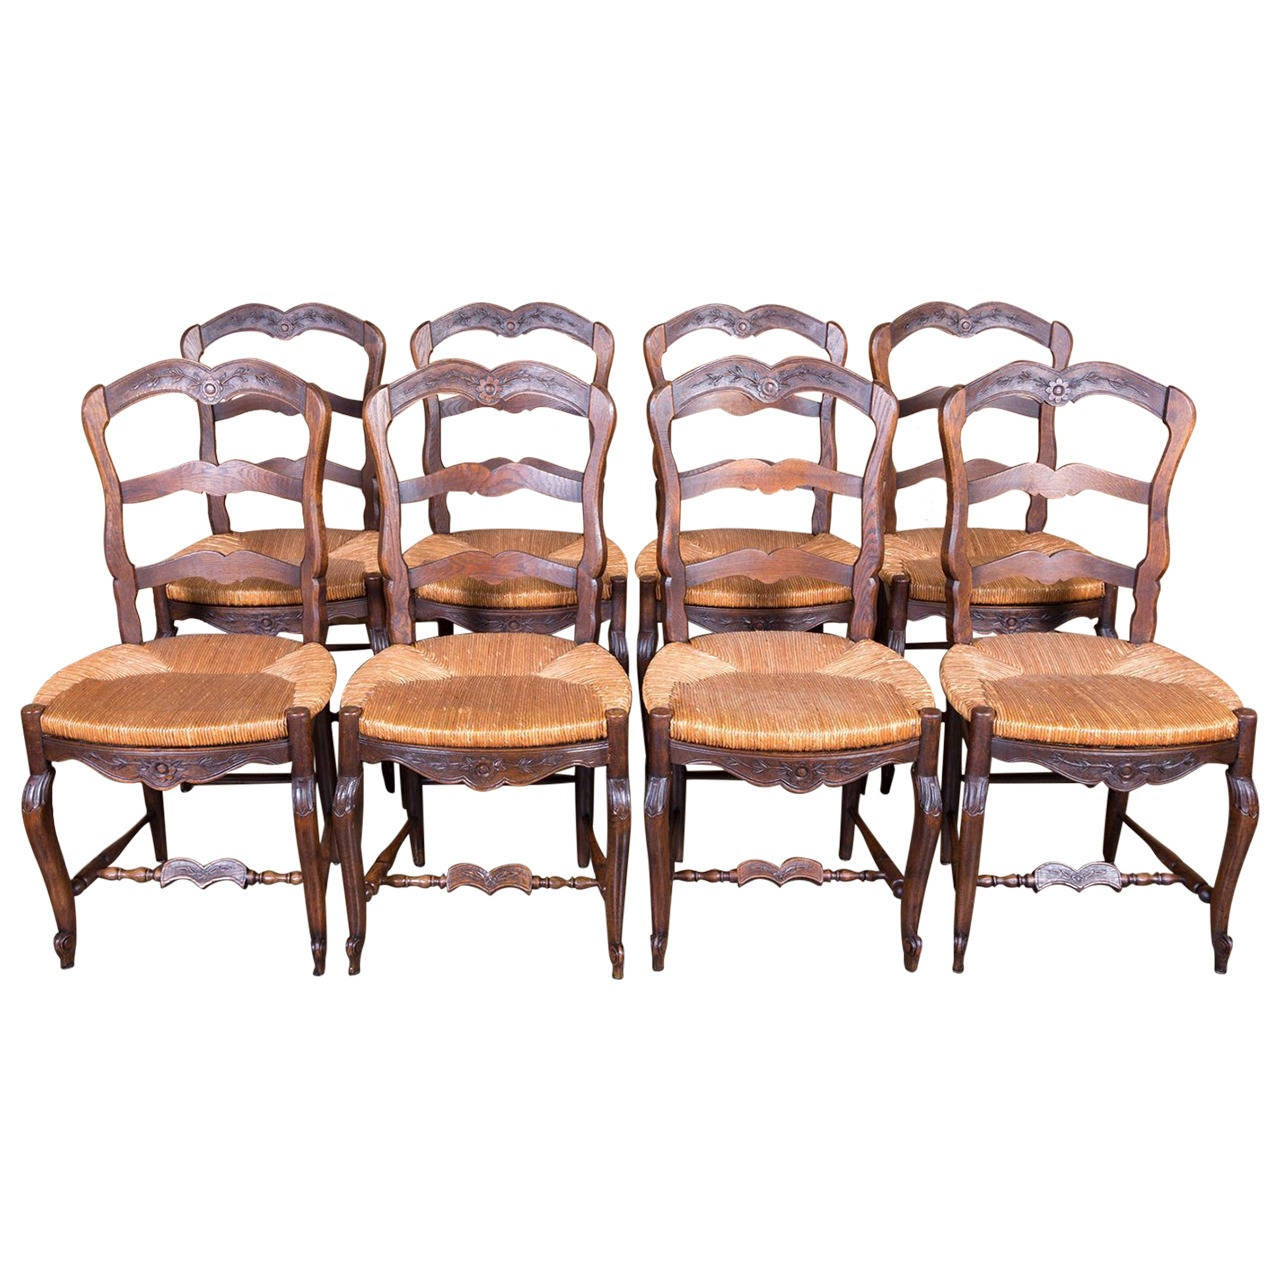 High Quality Set Of Eight Country French Antique Provencal Rush Seat Ladder Back Chairs 1